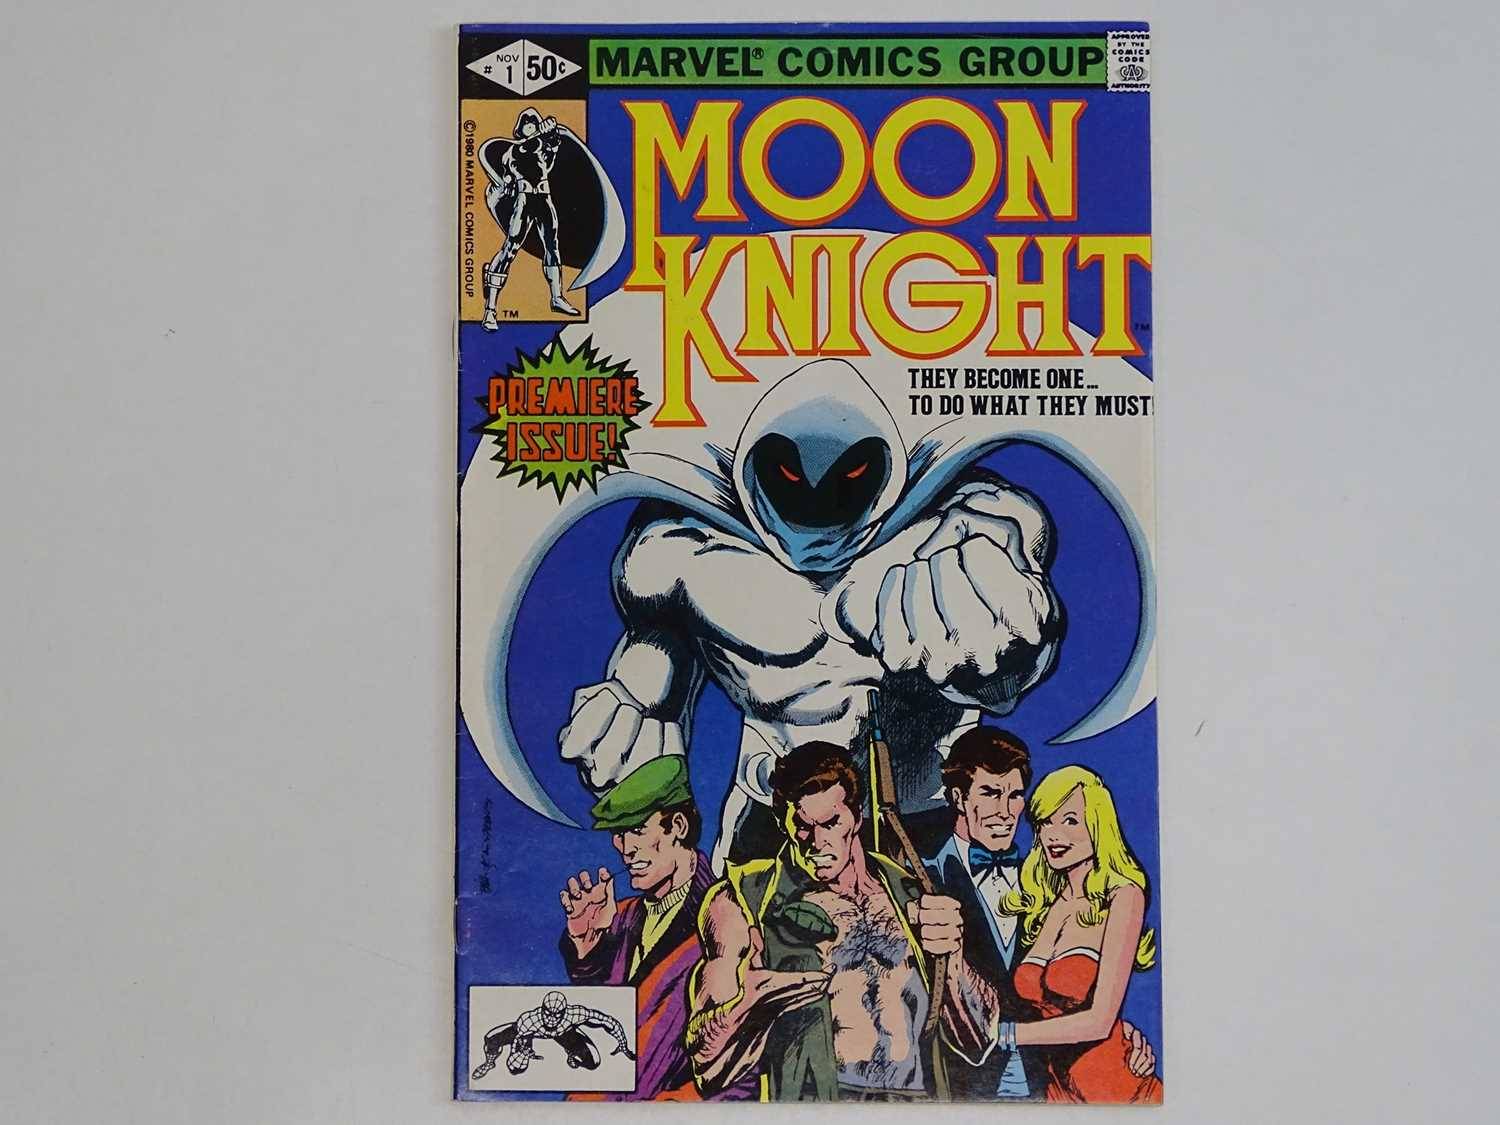 MOON KNIGHT #1 - (1980 - MARVEL) - HOT BOOK - Origin of Moon Knight + First appearance of the